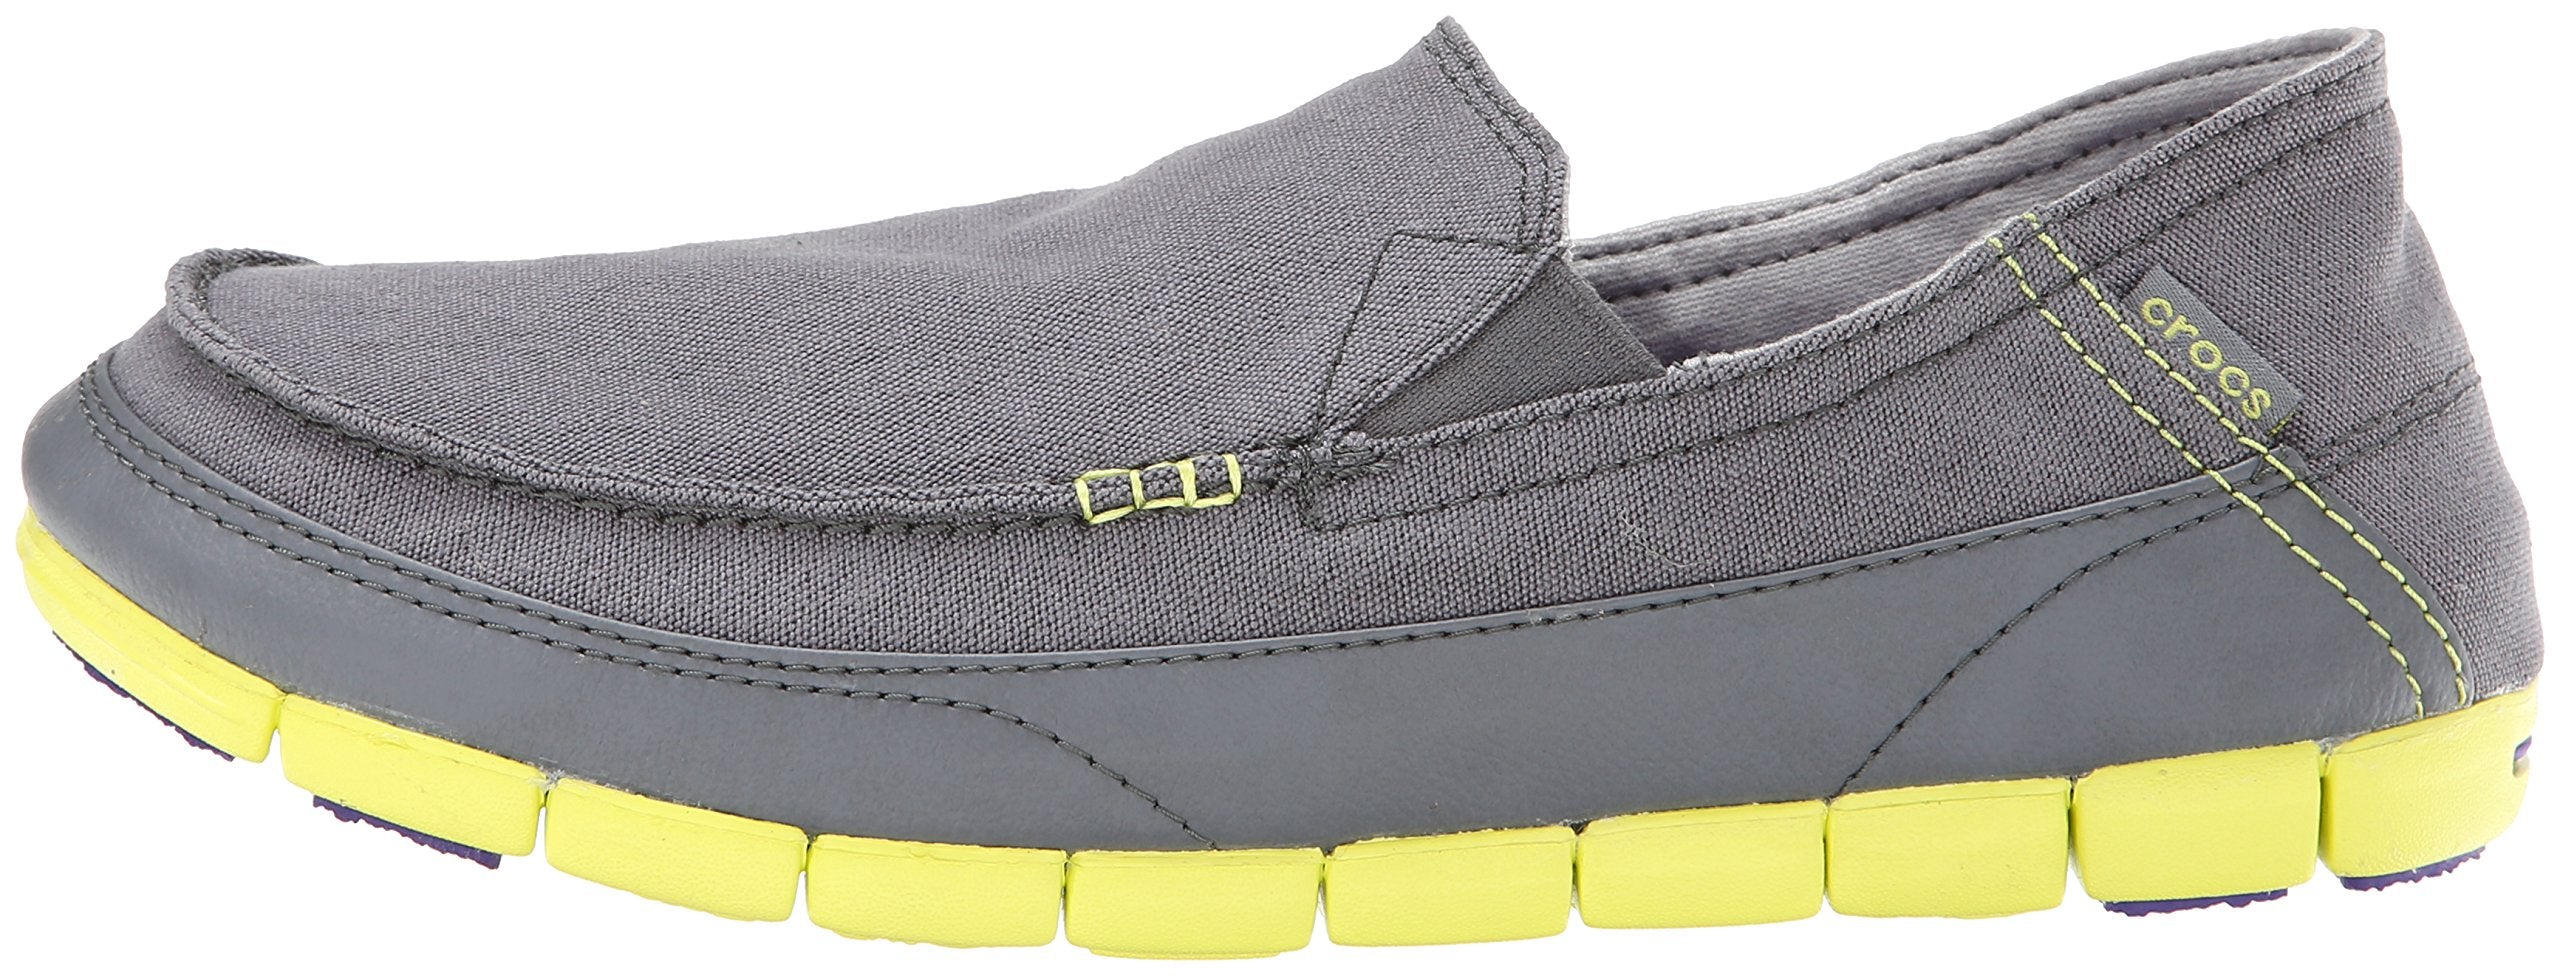 Crocs Men's Stretch Sole Loafer